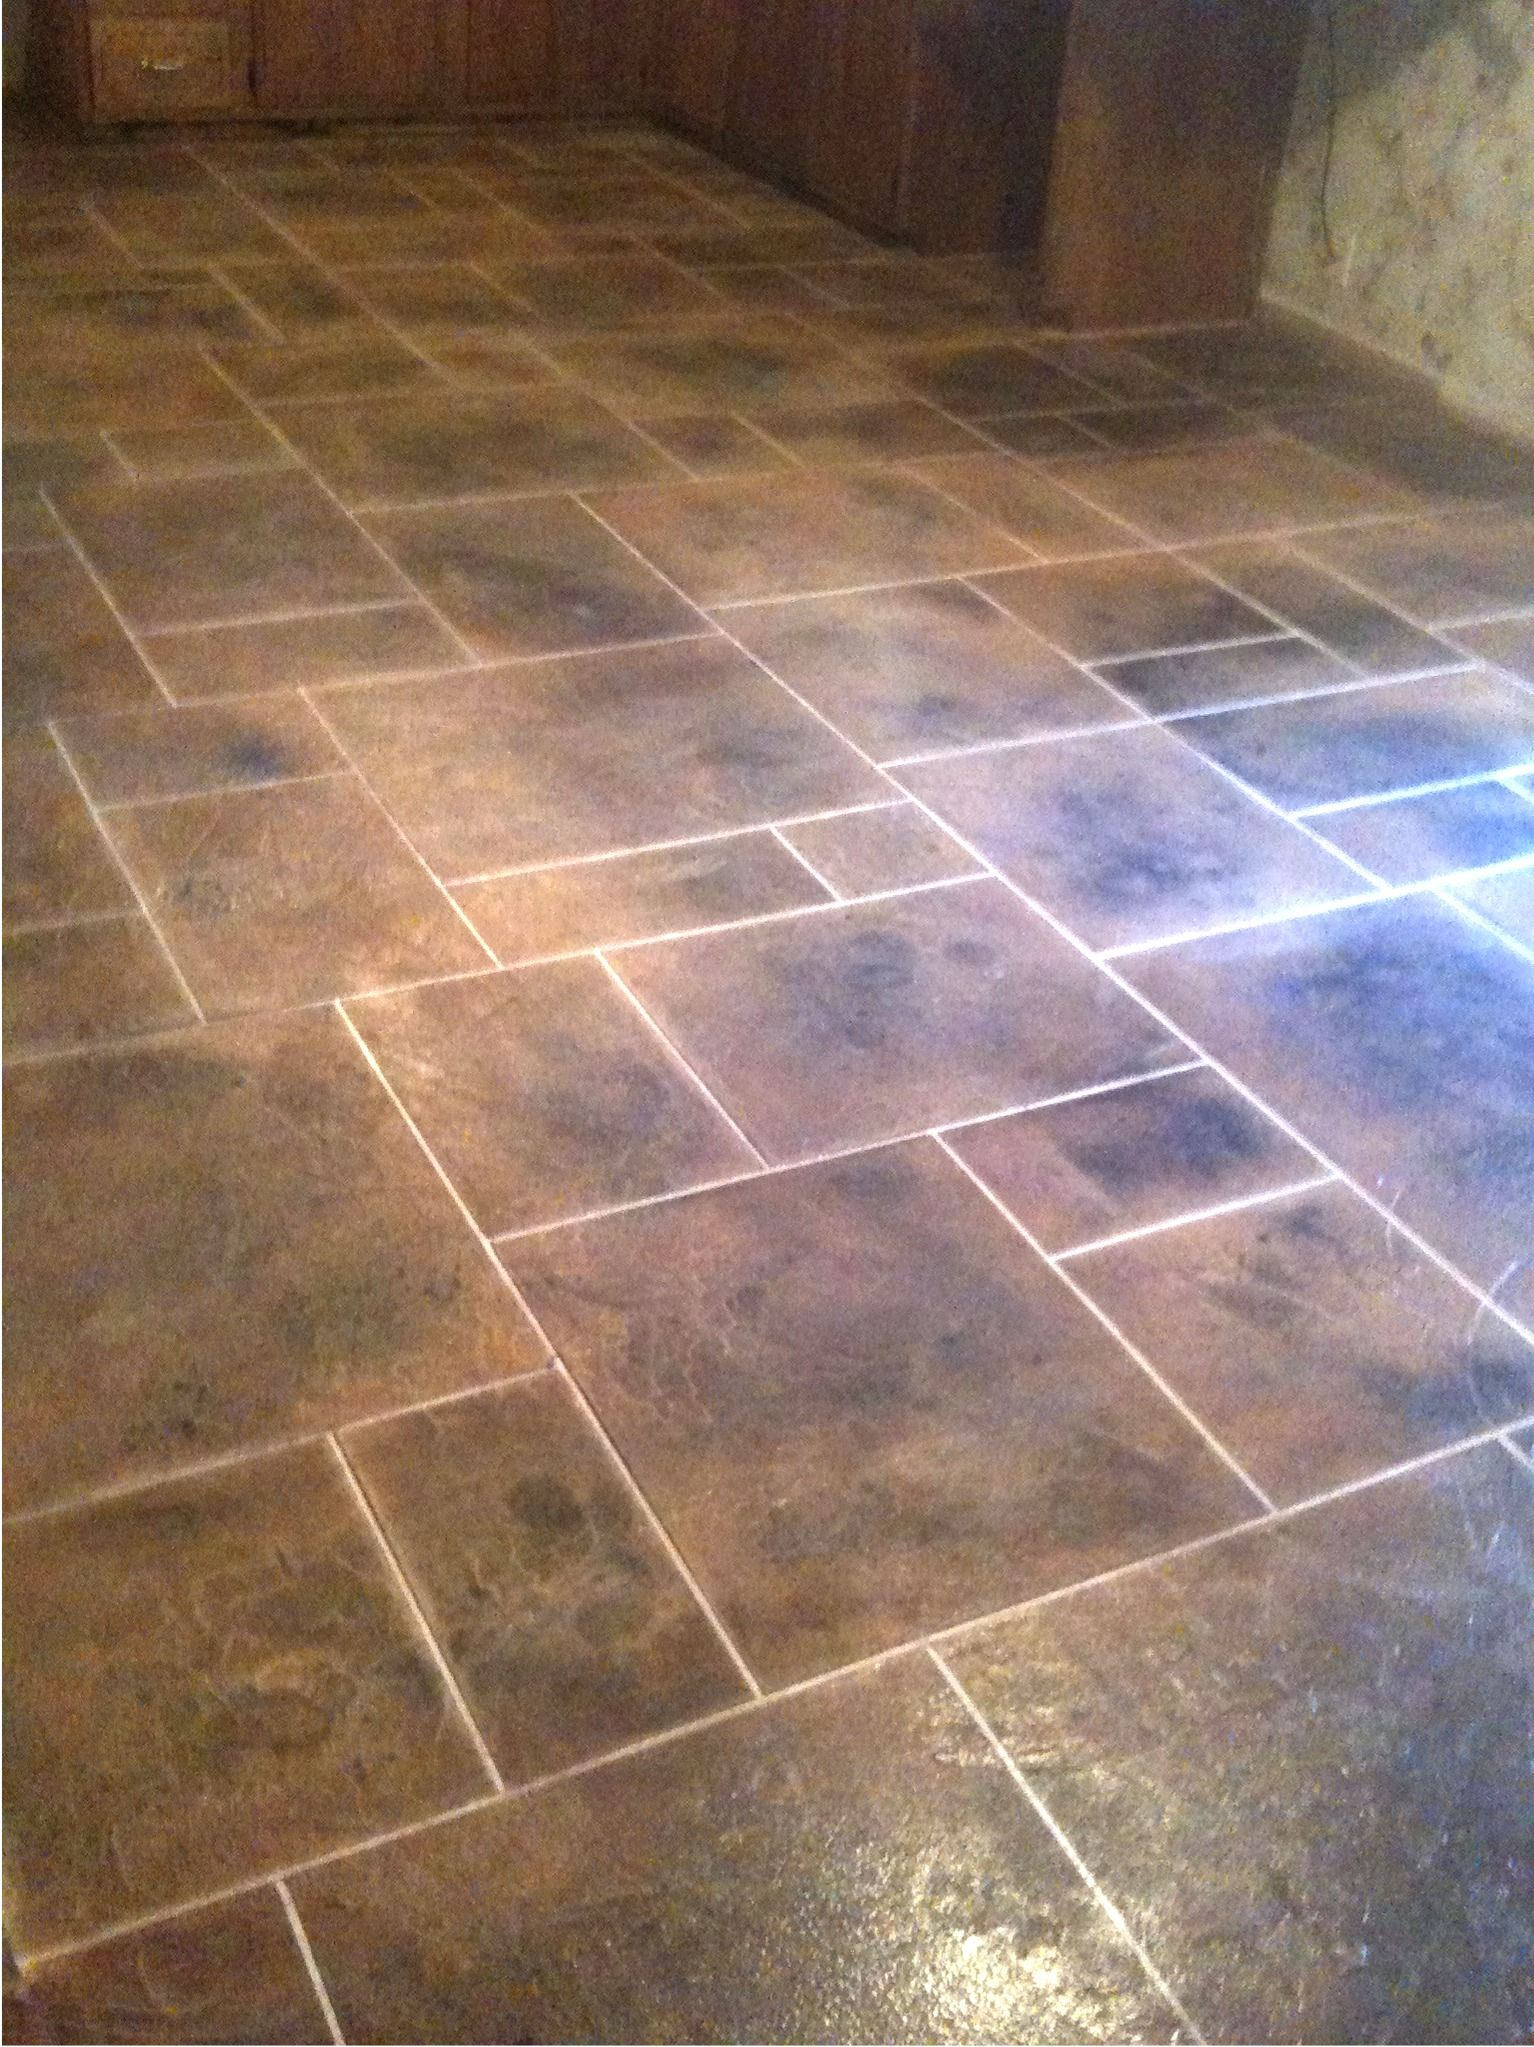 Tiling A Kitchen Floor Kitchen Floor Tile Patterns Concrete Overlay Random Pattern